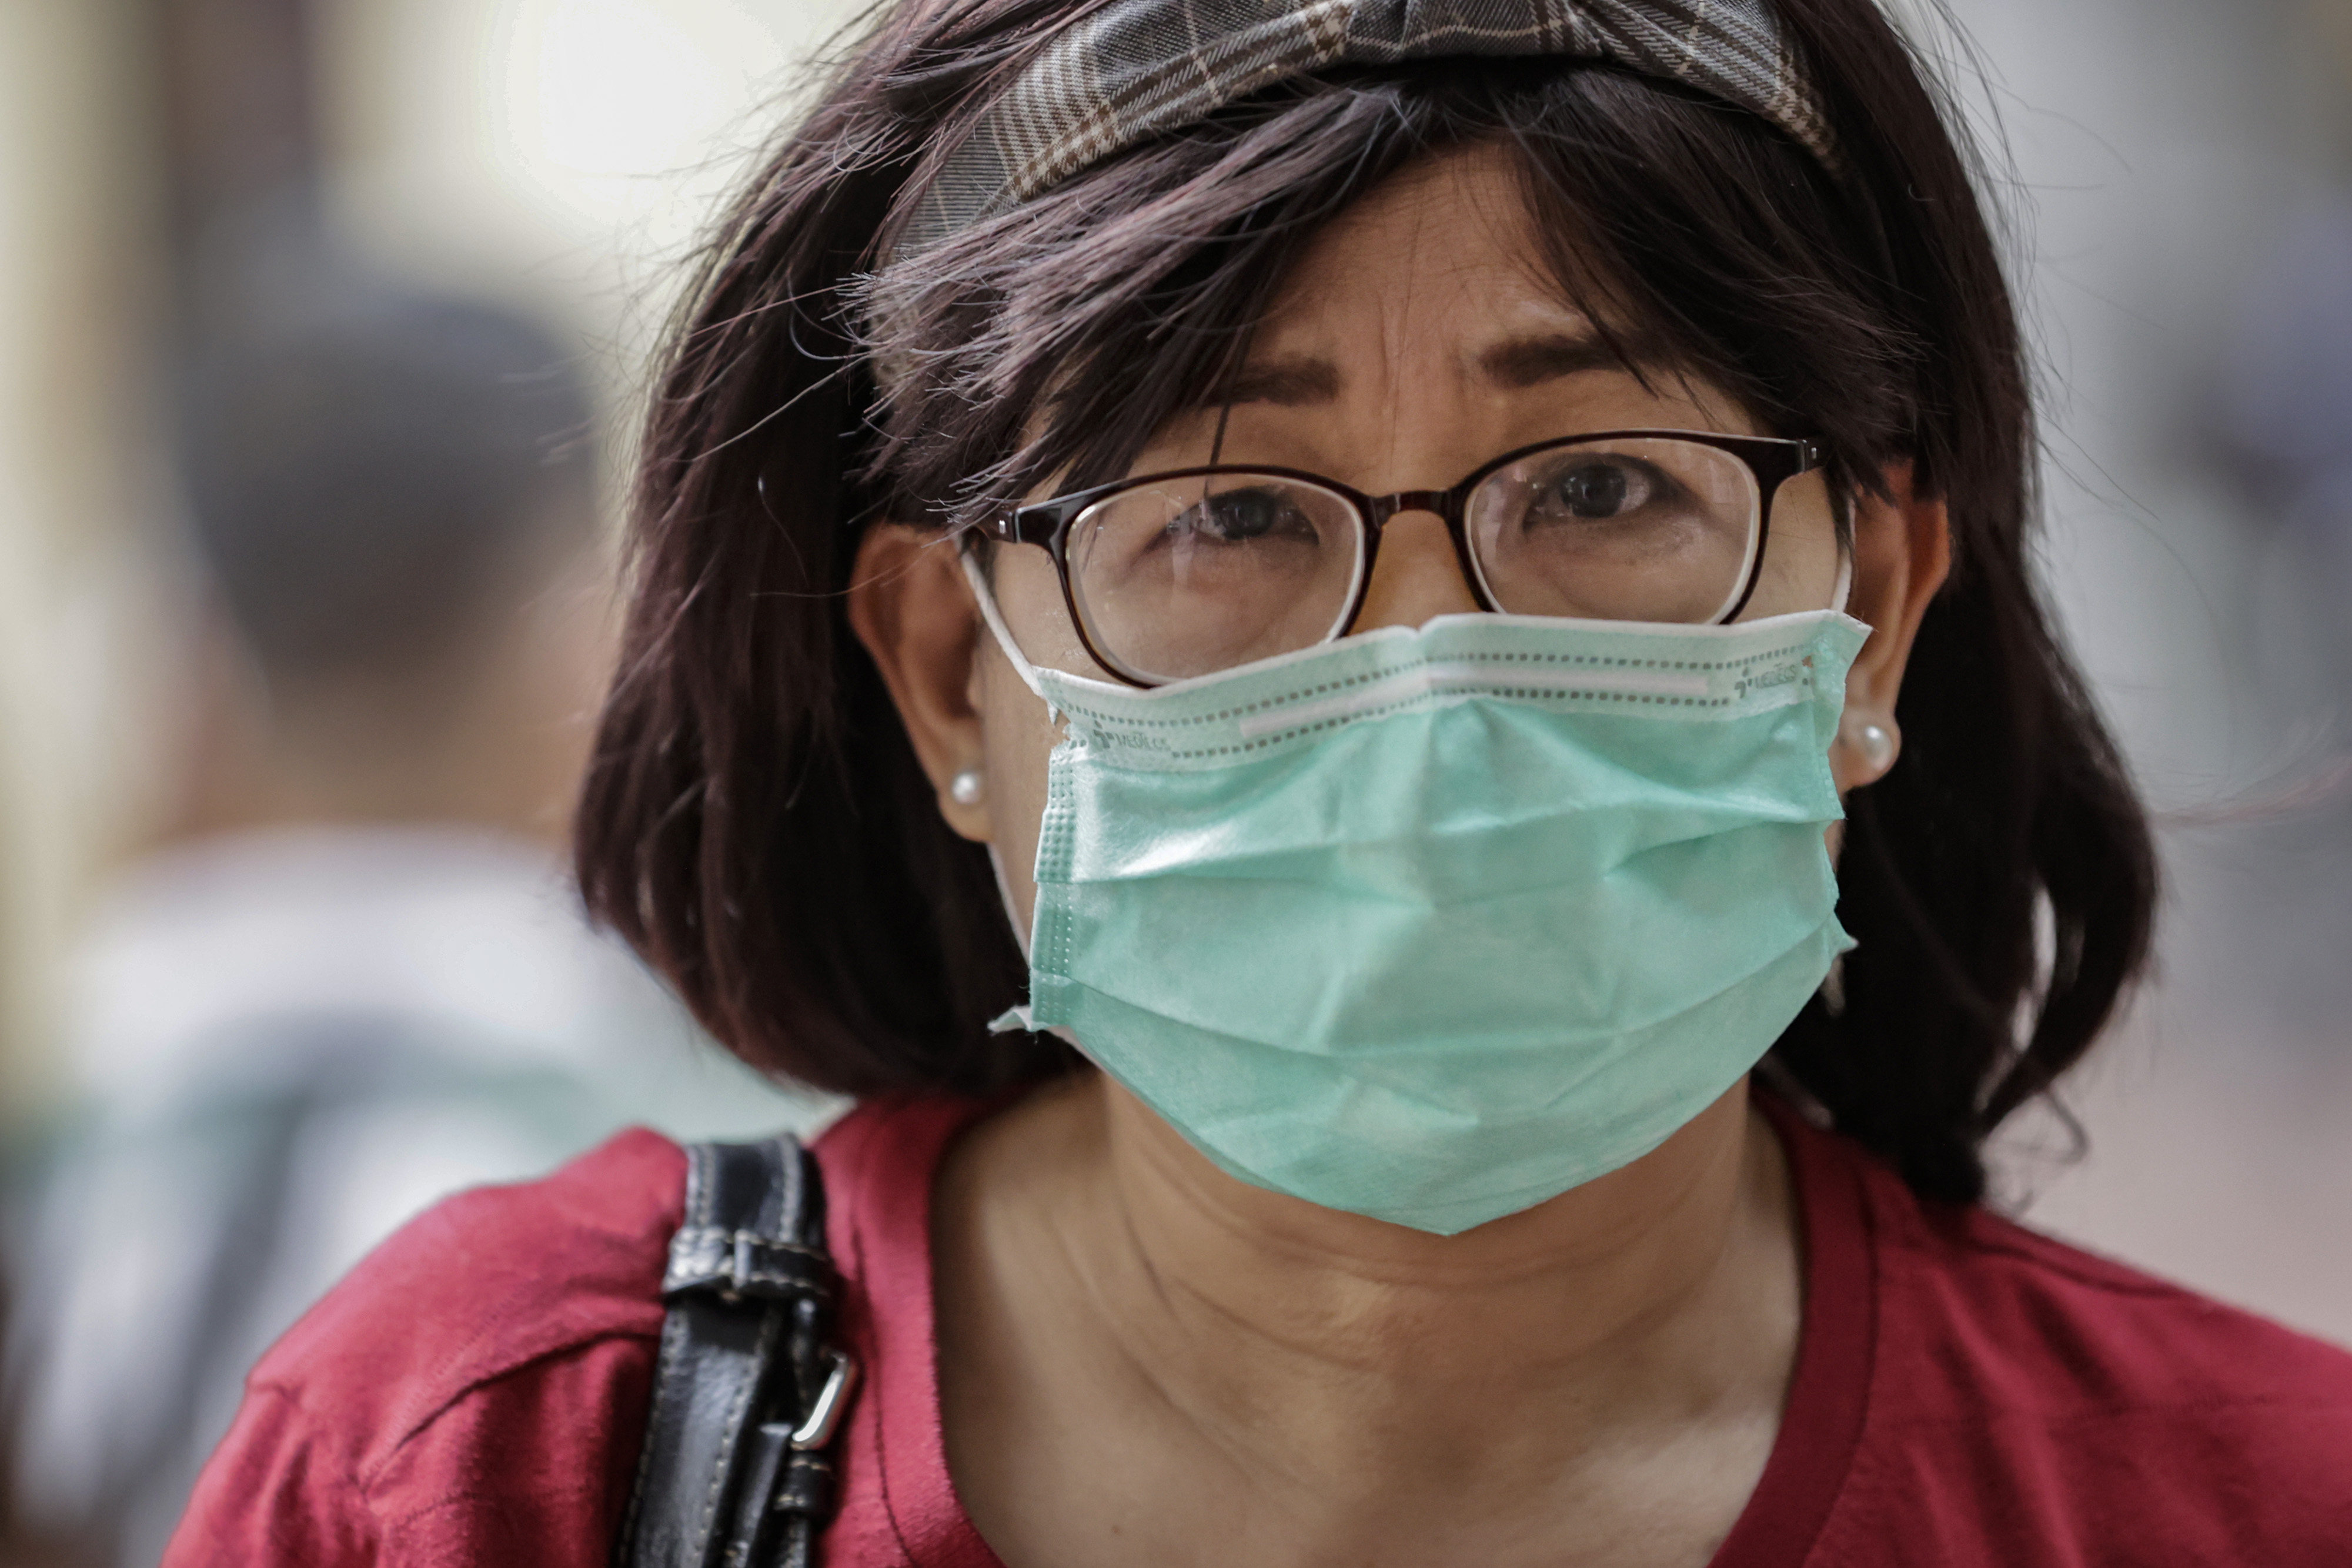 FEBRUARY 03: A woman is seen wearing a face mask, as public fear over China's Wuhan Coronavirus grows, on February 3, 2020 in Manila, Philippines. The Philippine government has been heavily criticized after failing to immediately implement travel restrictions on China, the source of a deadly coronavirus that has now killed more than 300 people and infected thousands more. On Sunday, the first coronavirus death outside of China was reported in the Philippines. (Photo by Ezra Acayan/Getty Images)